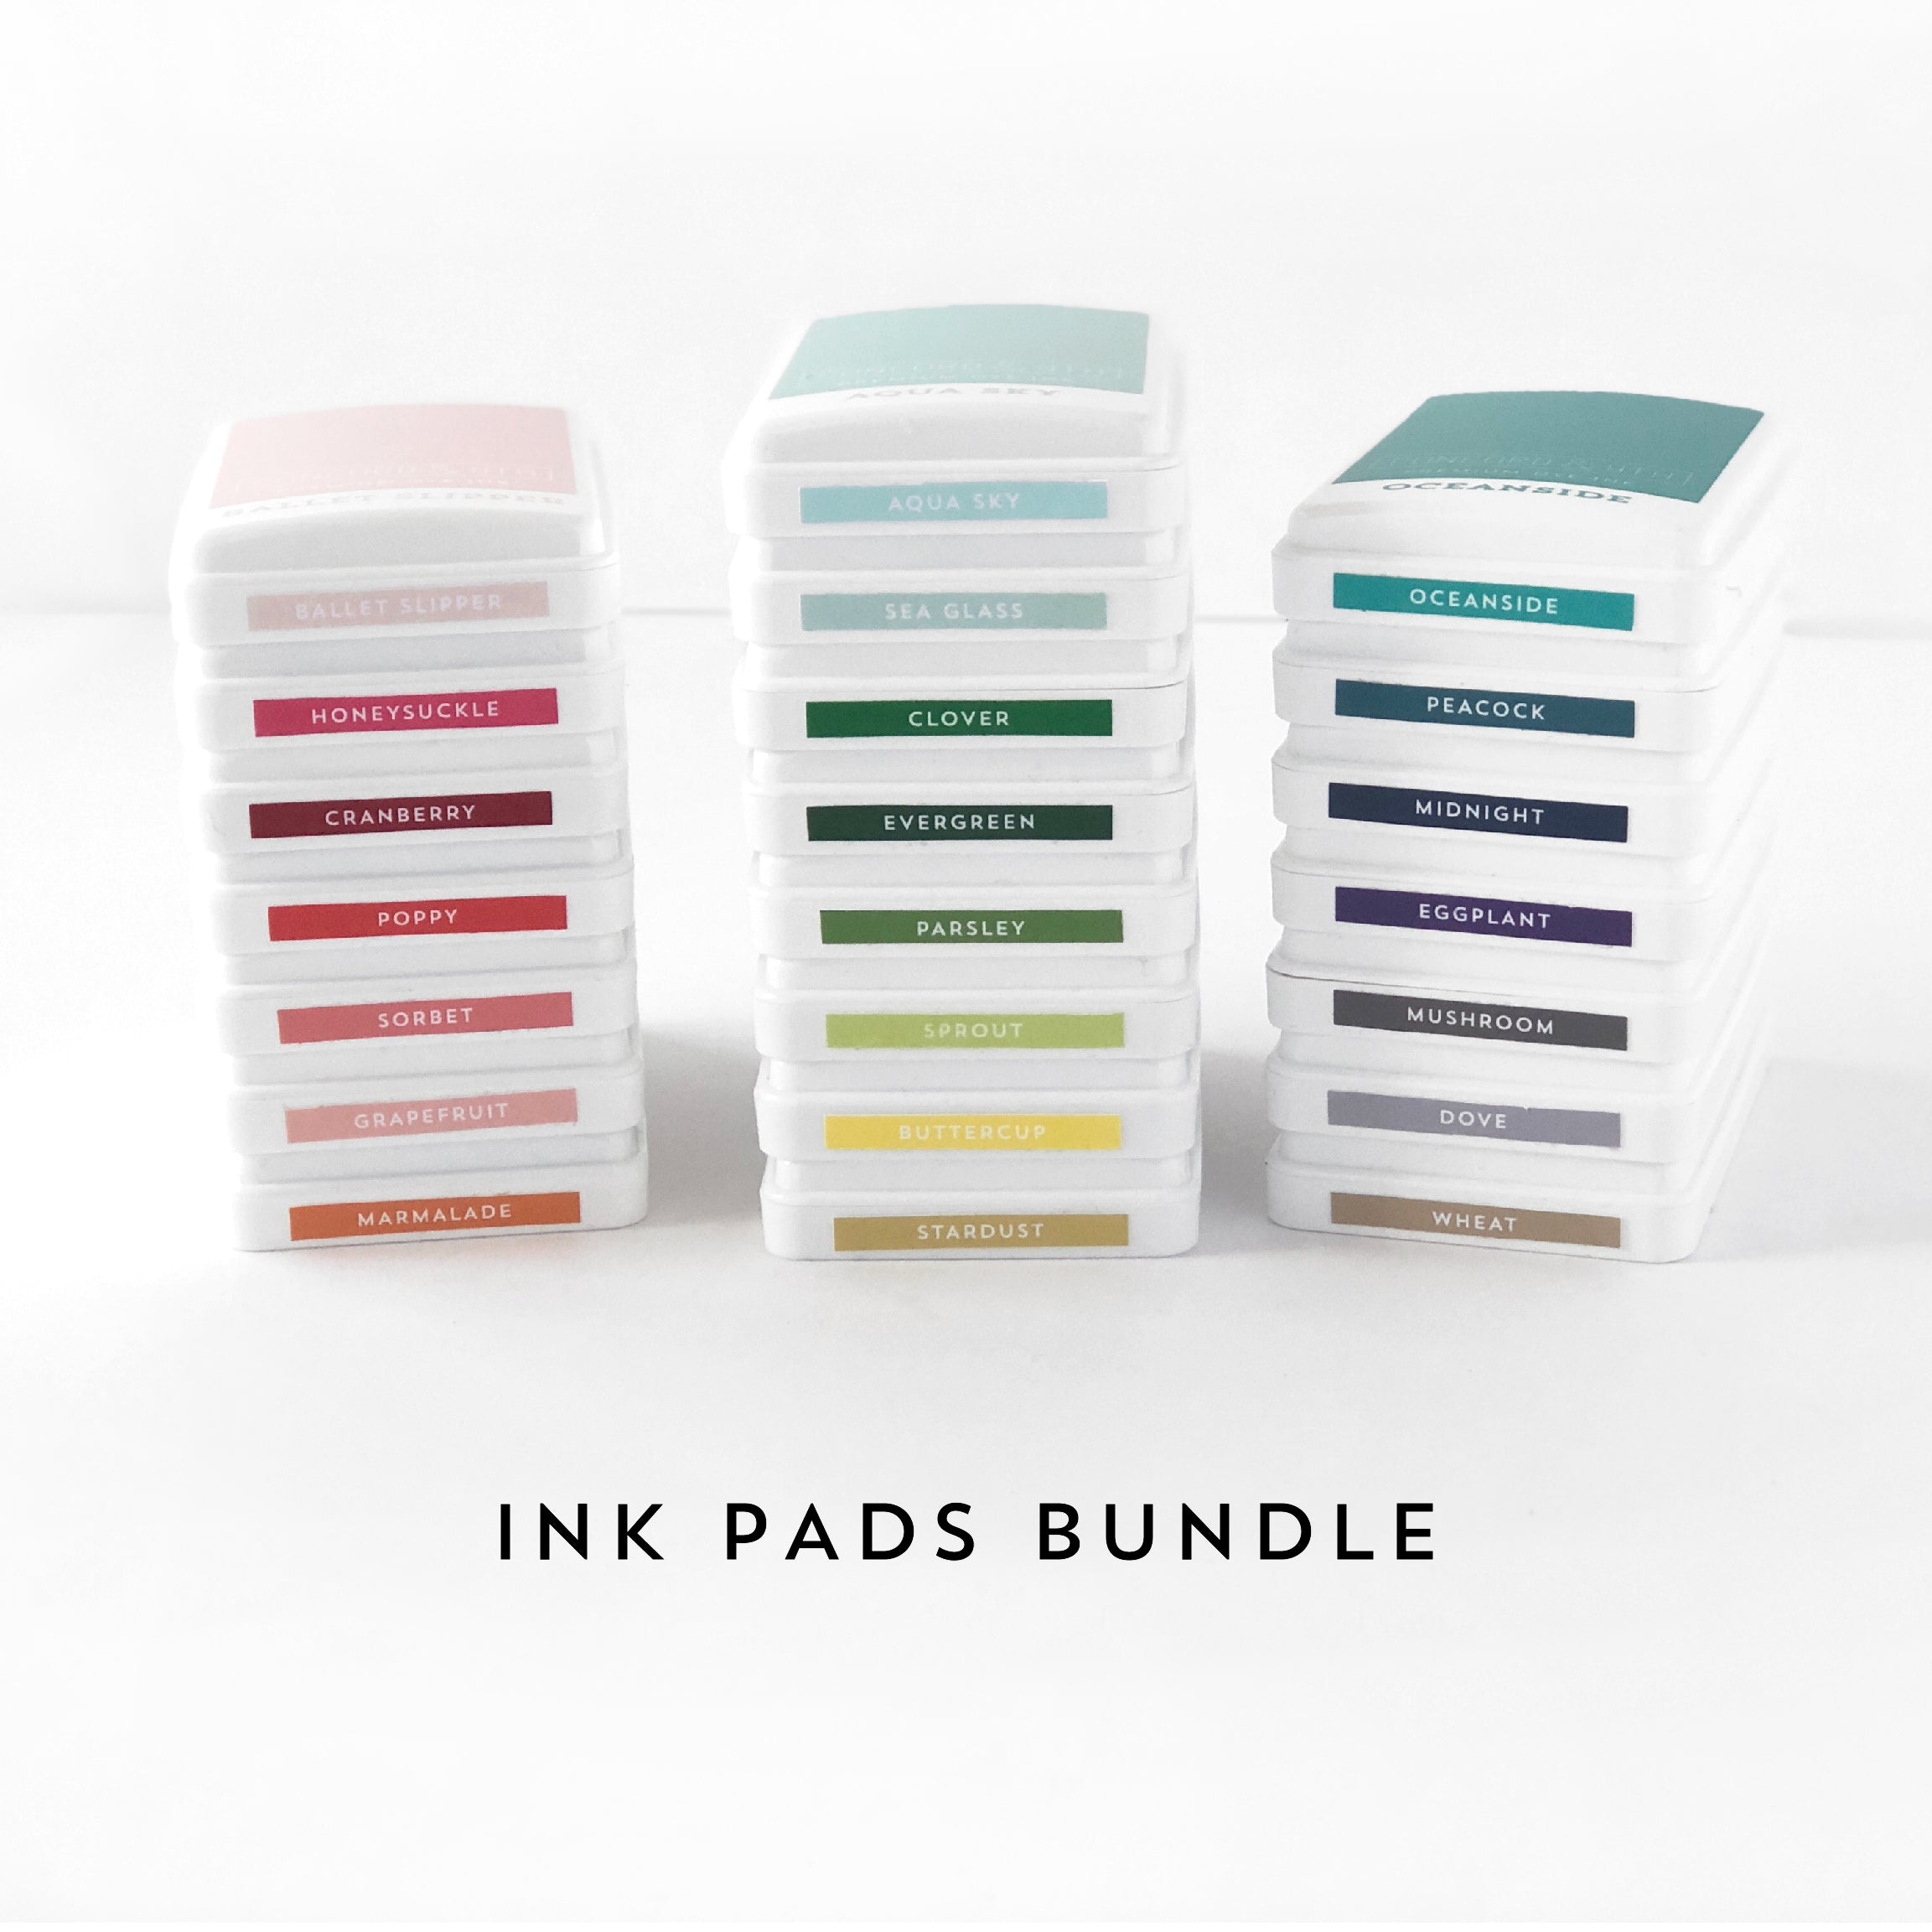 Ink Pads Bundle